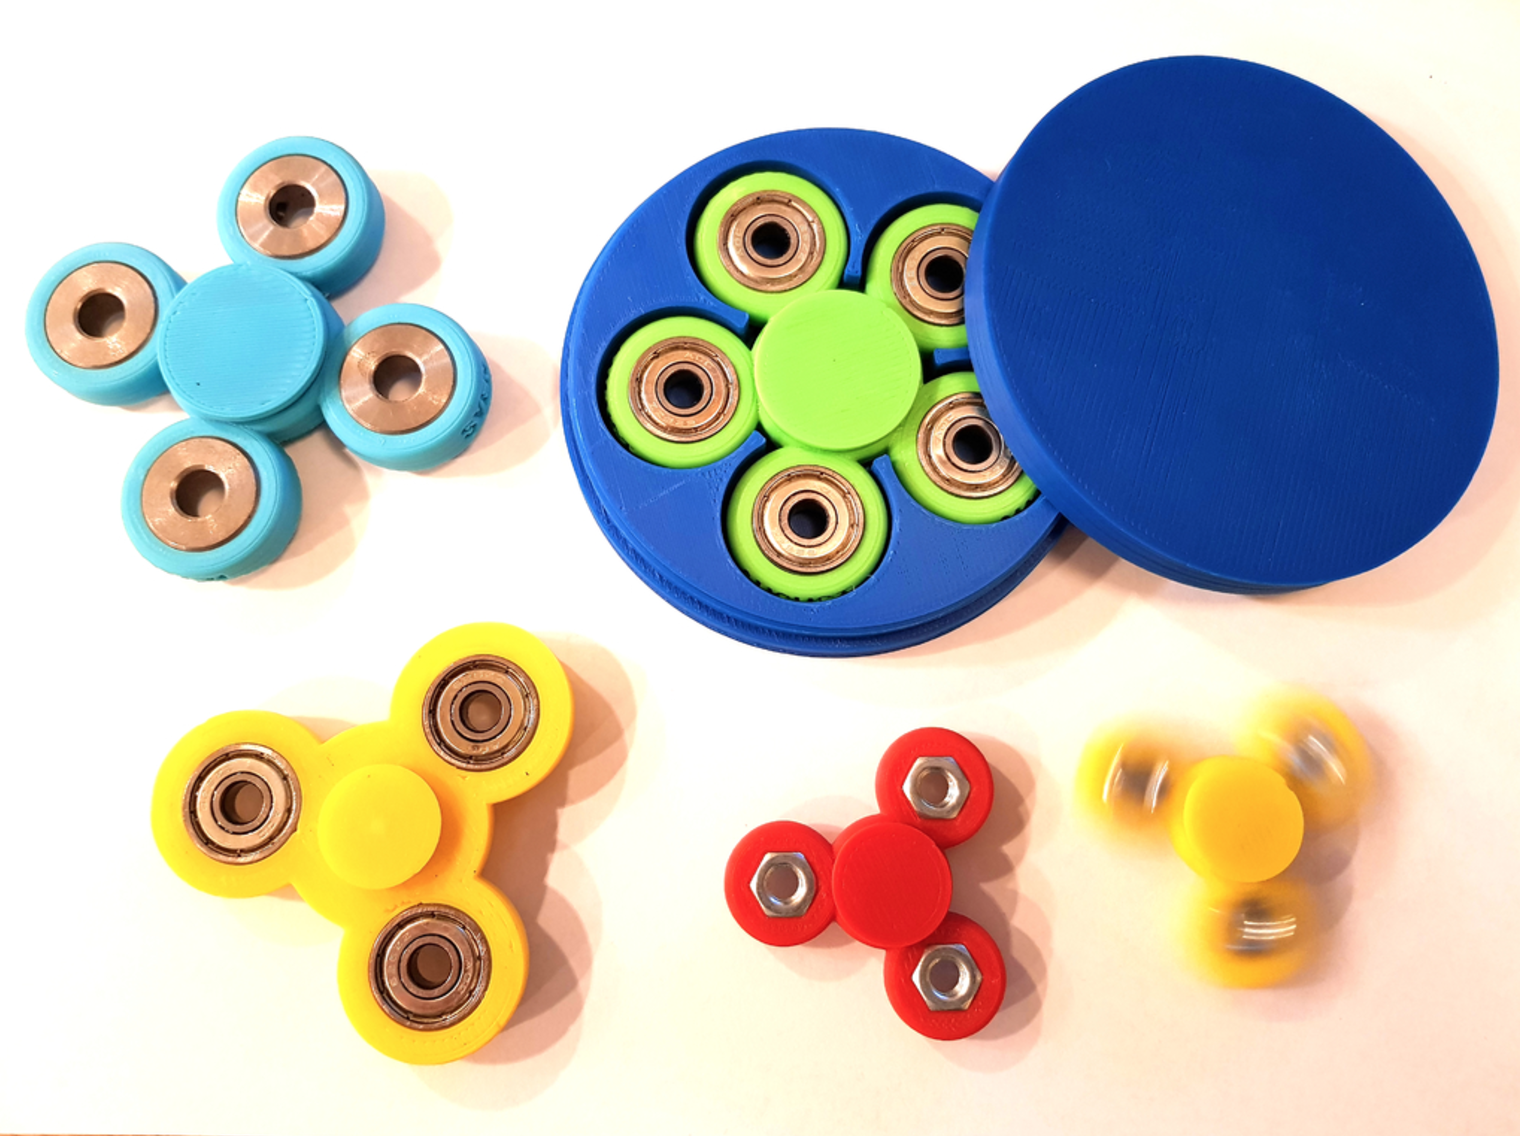 Capture d'écran 2017-06-01 à 10.07.49.png Download free STL file Customizable fidget spinner with text and perfect storage box • 3D printer template, eirikso